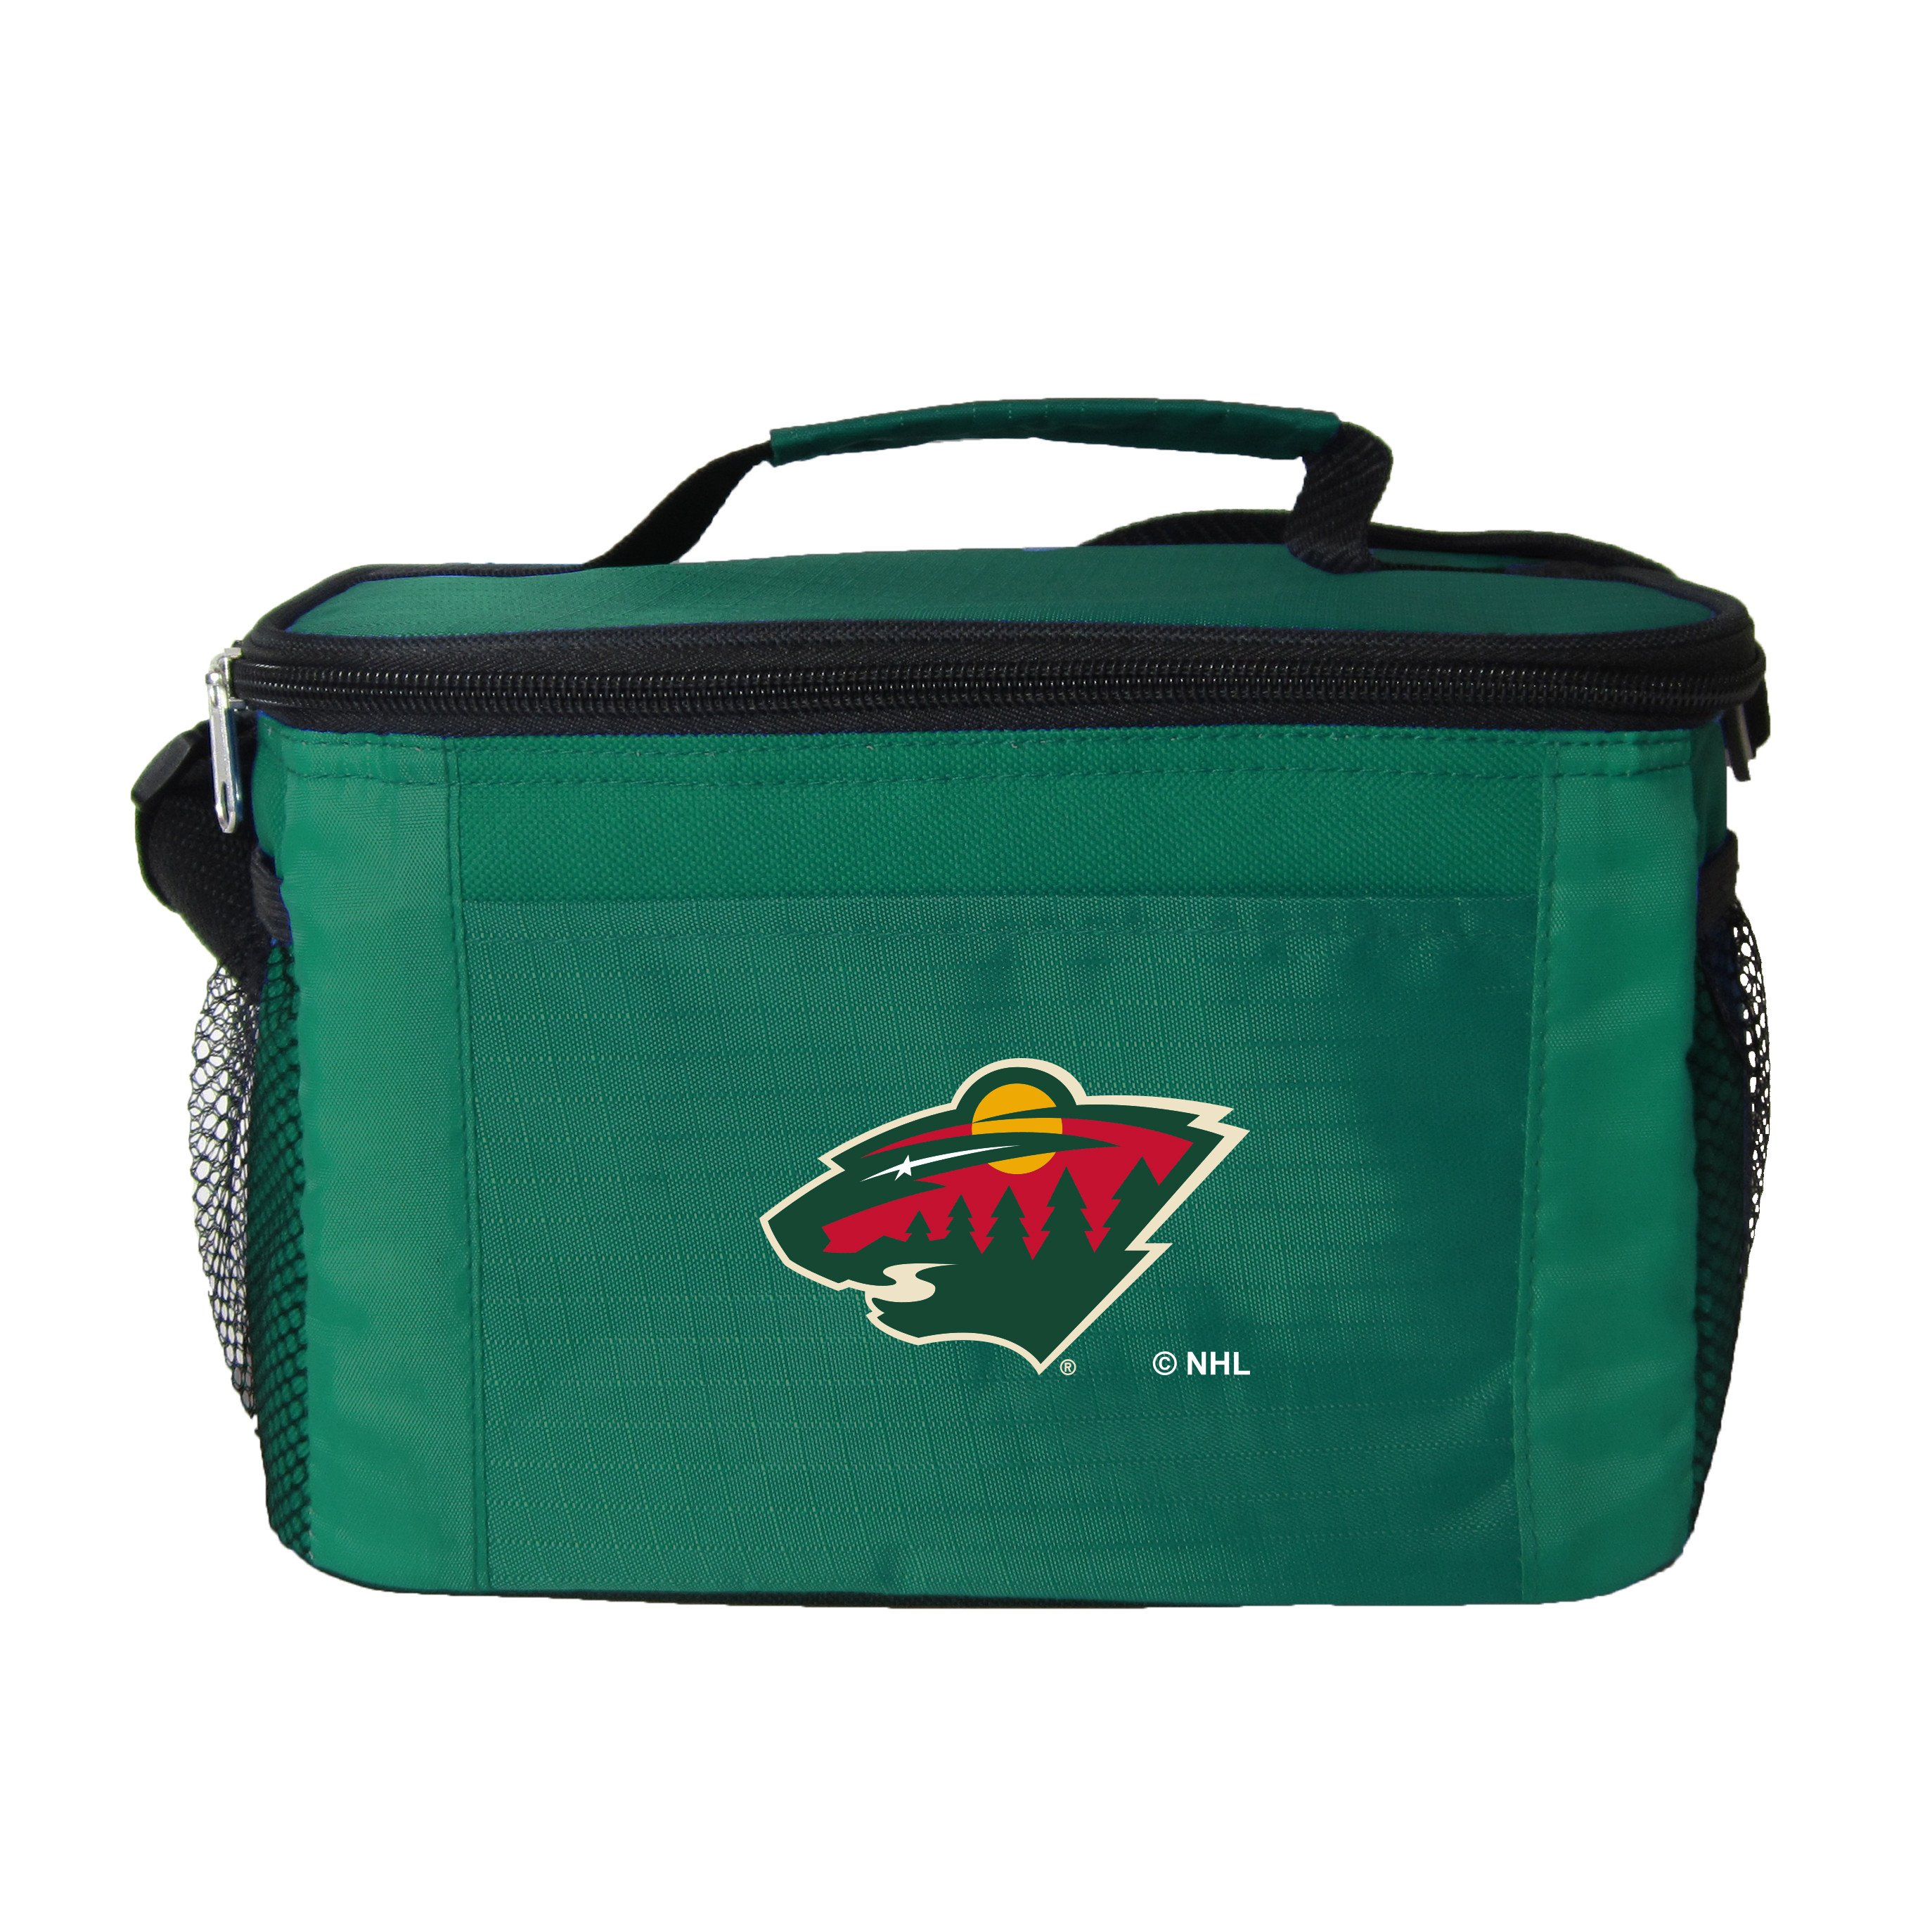 NHL Minnesota Wild 6 Can Cooler Bag